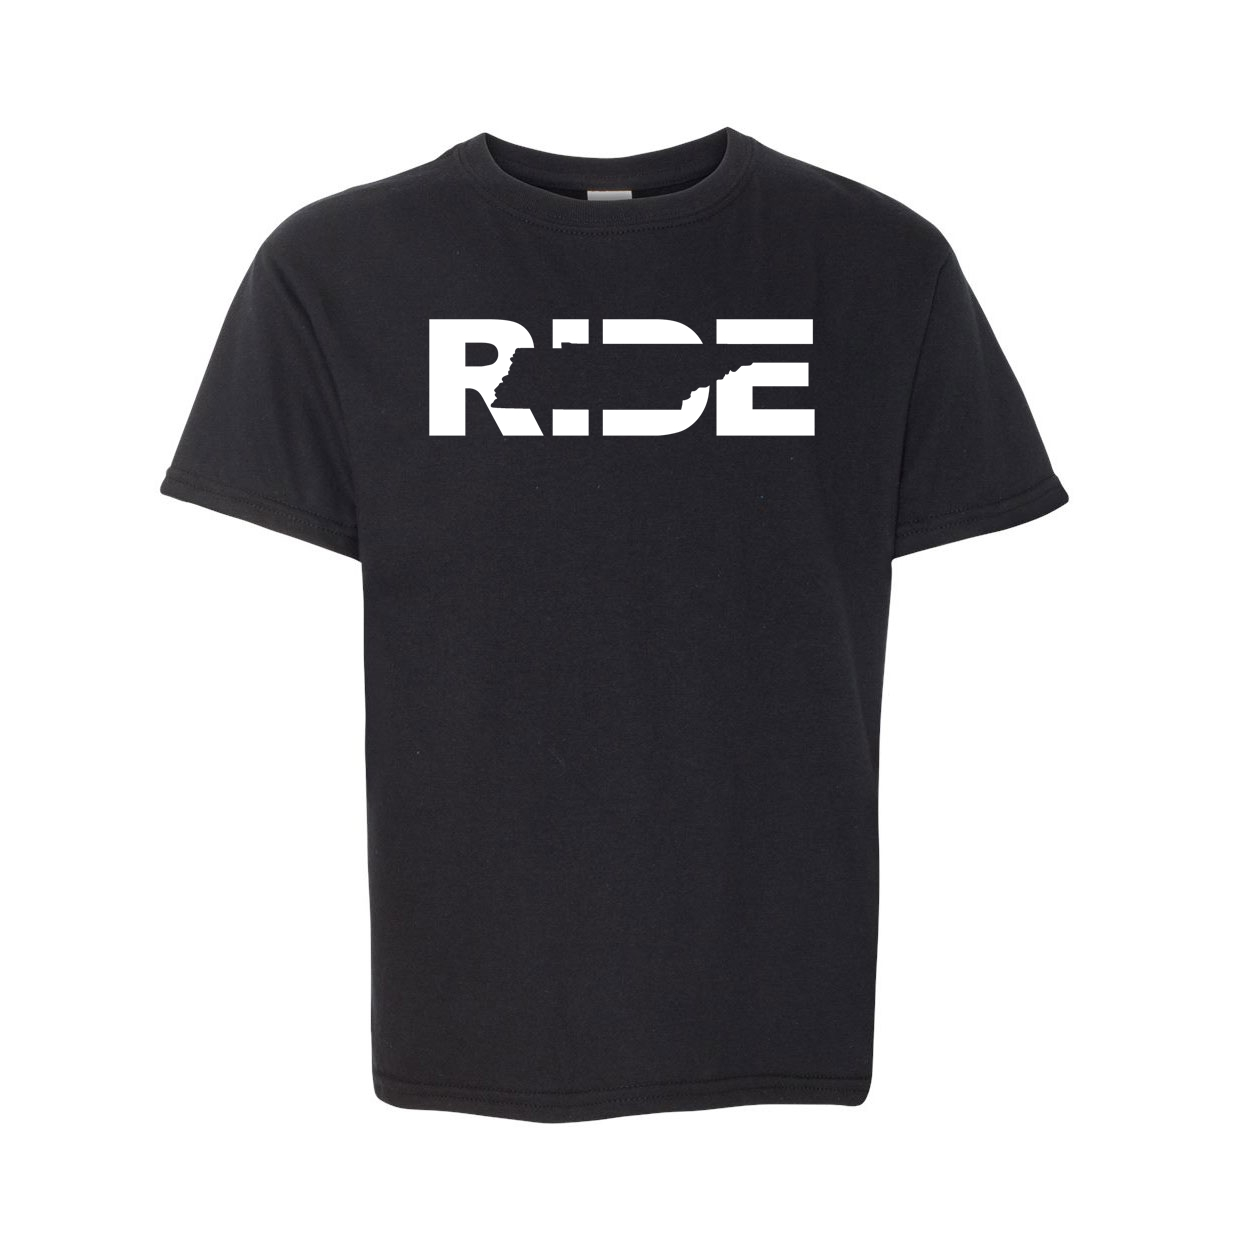 Ride Tennessee Classic Youth T-Shirt Black (White Logo)